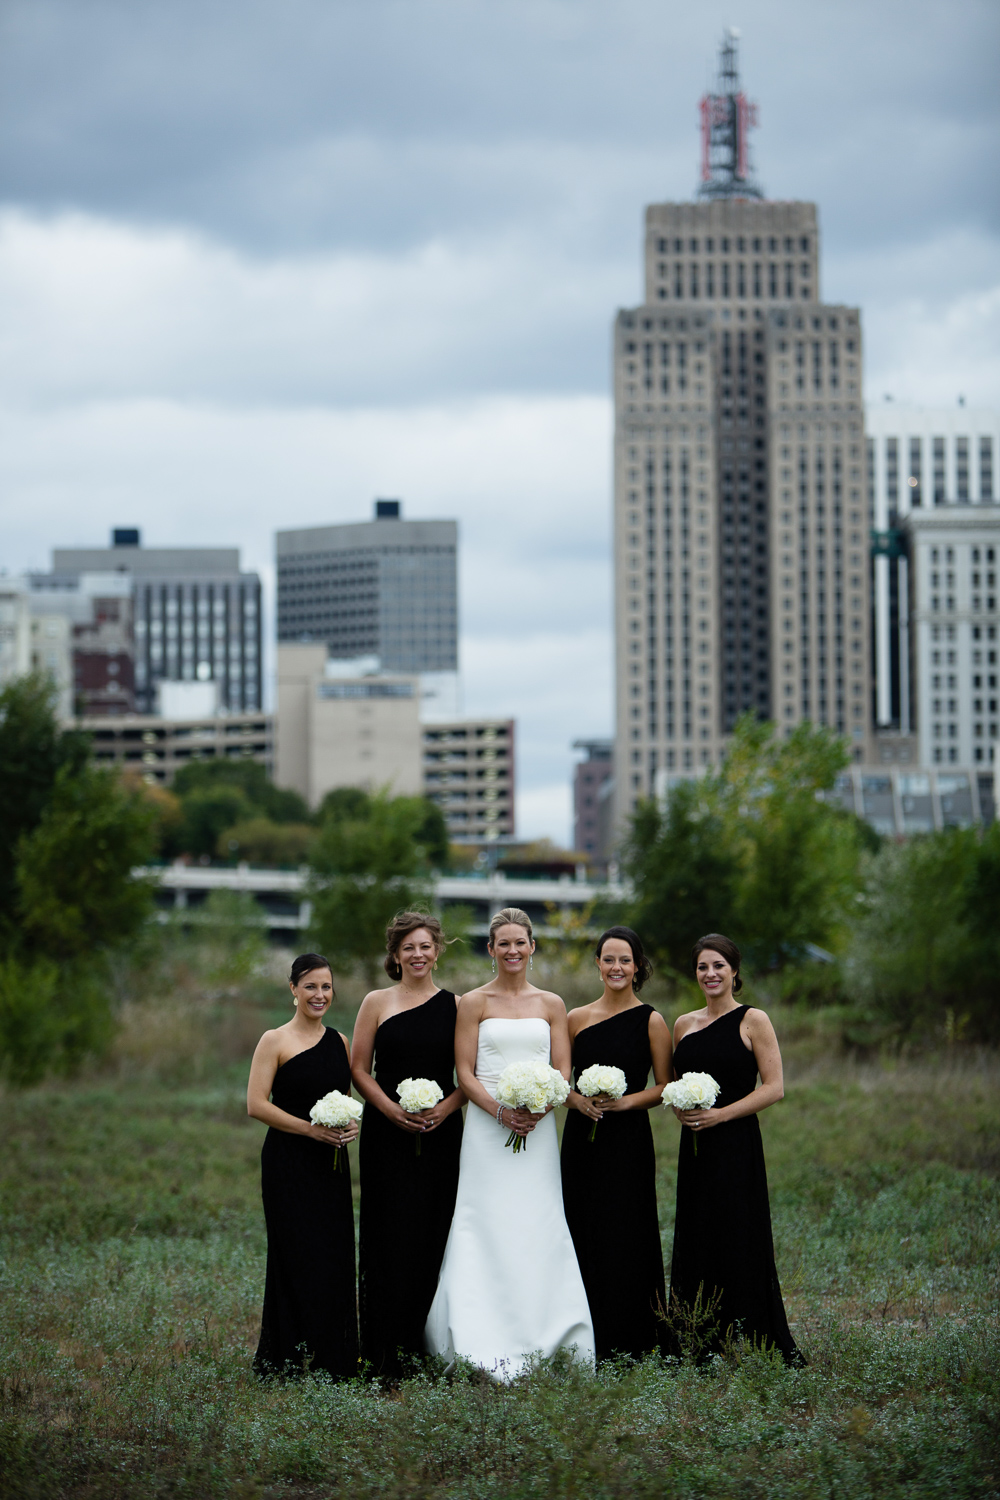 clewell minneapolis wedding photographer-146163270401394364.jpg